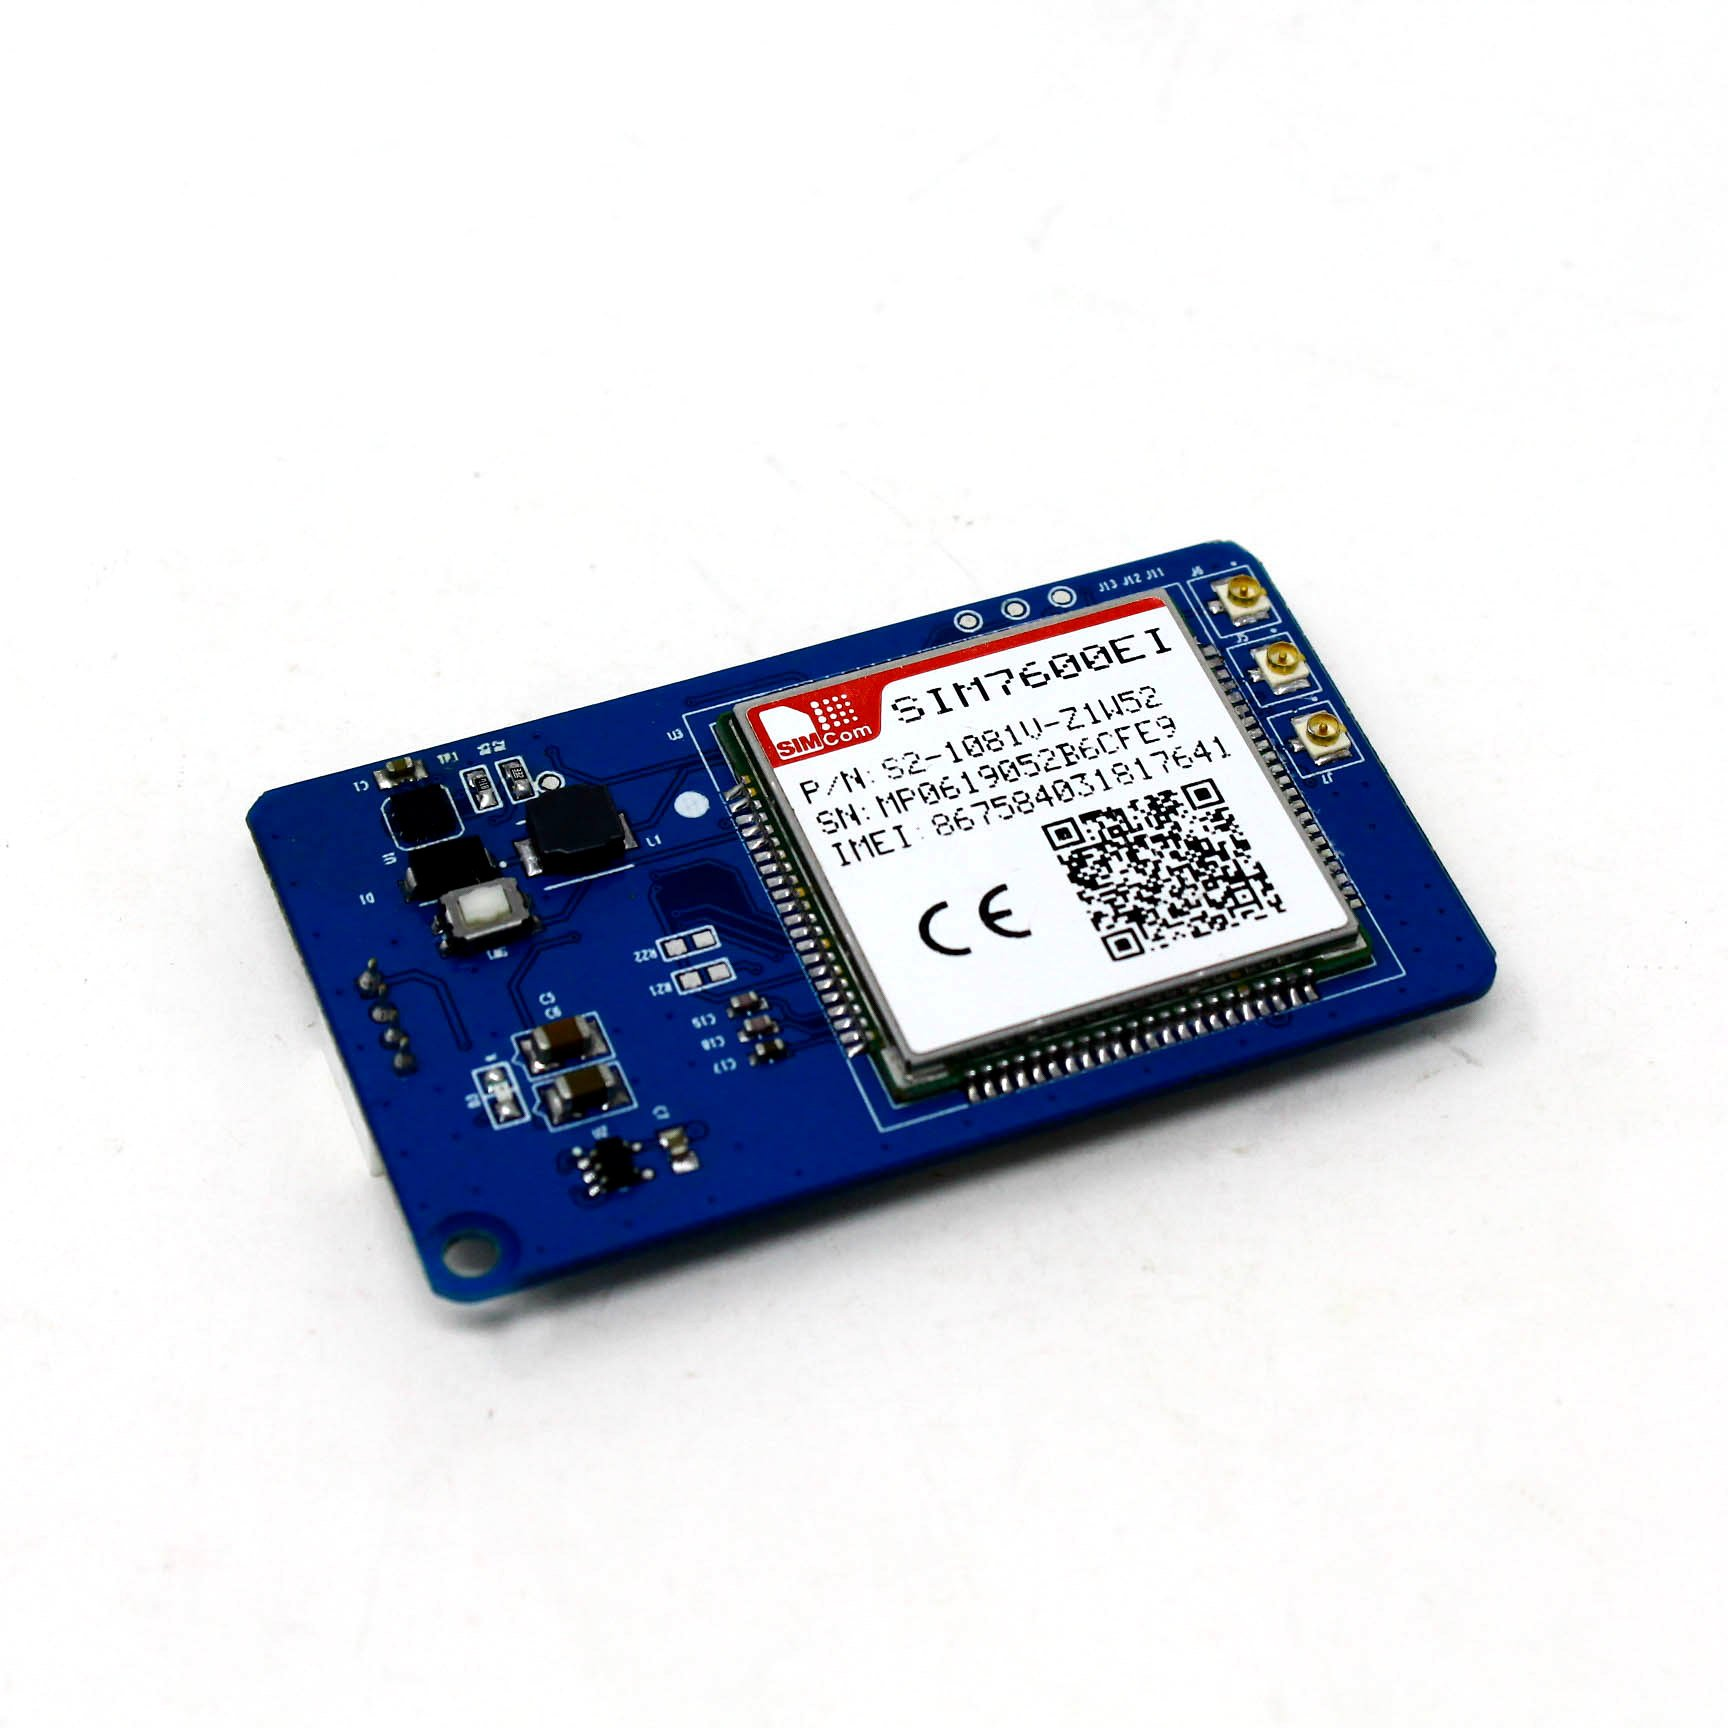 SIM7600EI 4G LTE High-Speed Modem GPS/GNSS IoT board